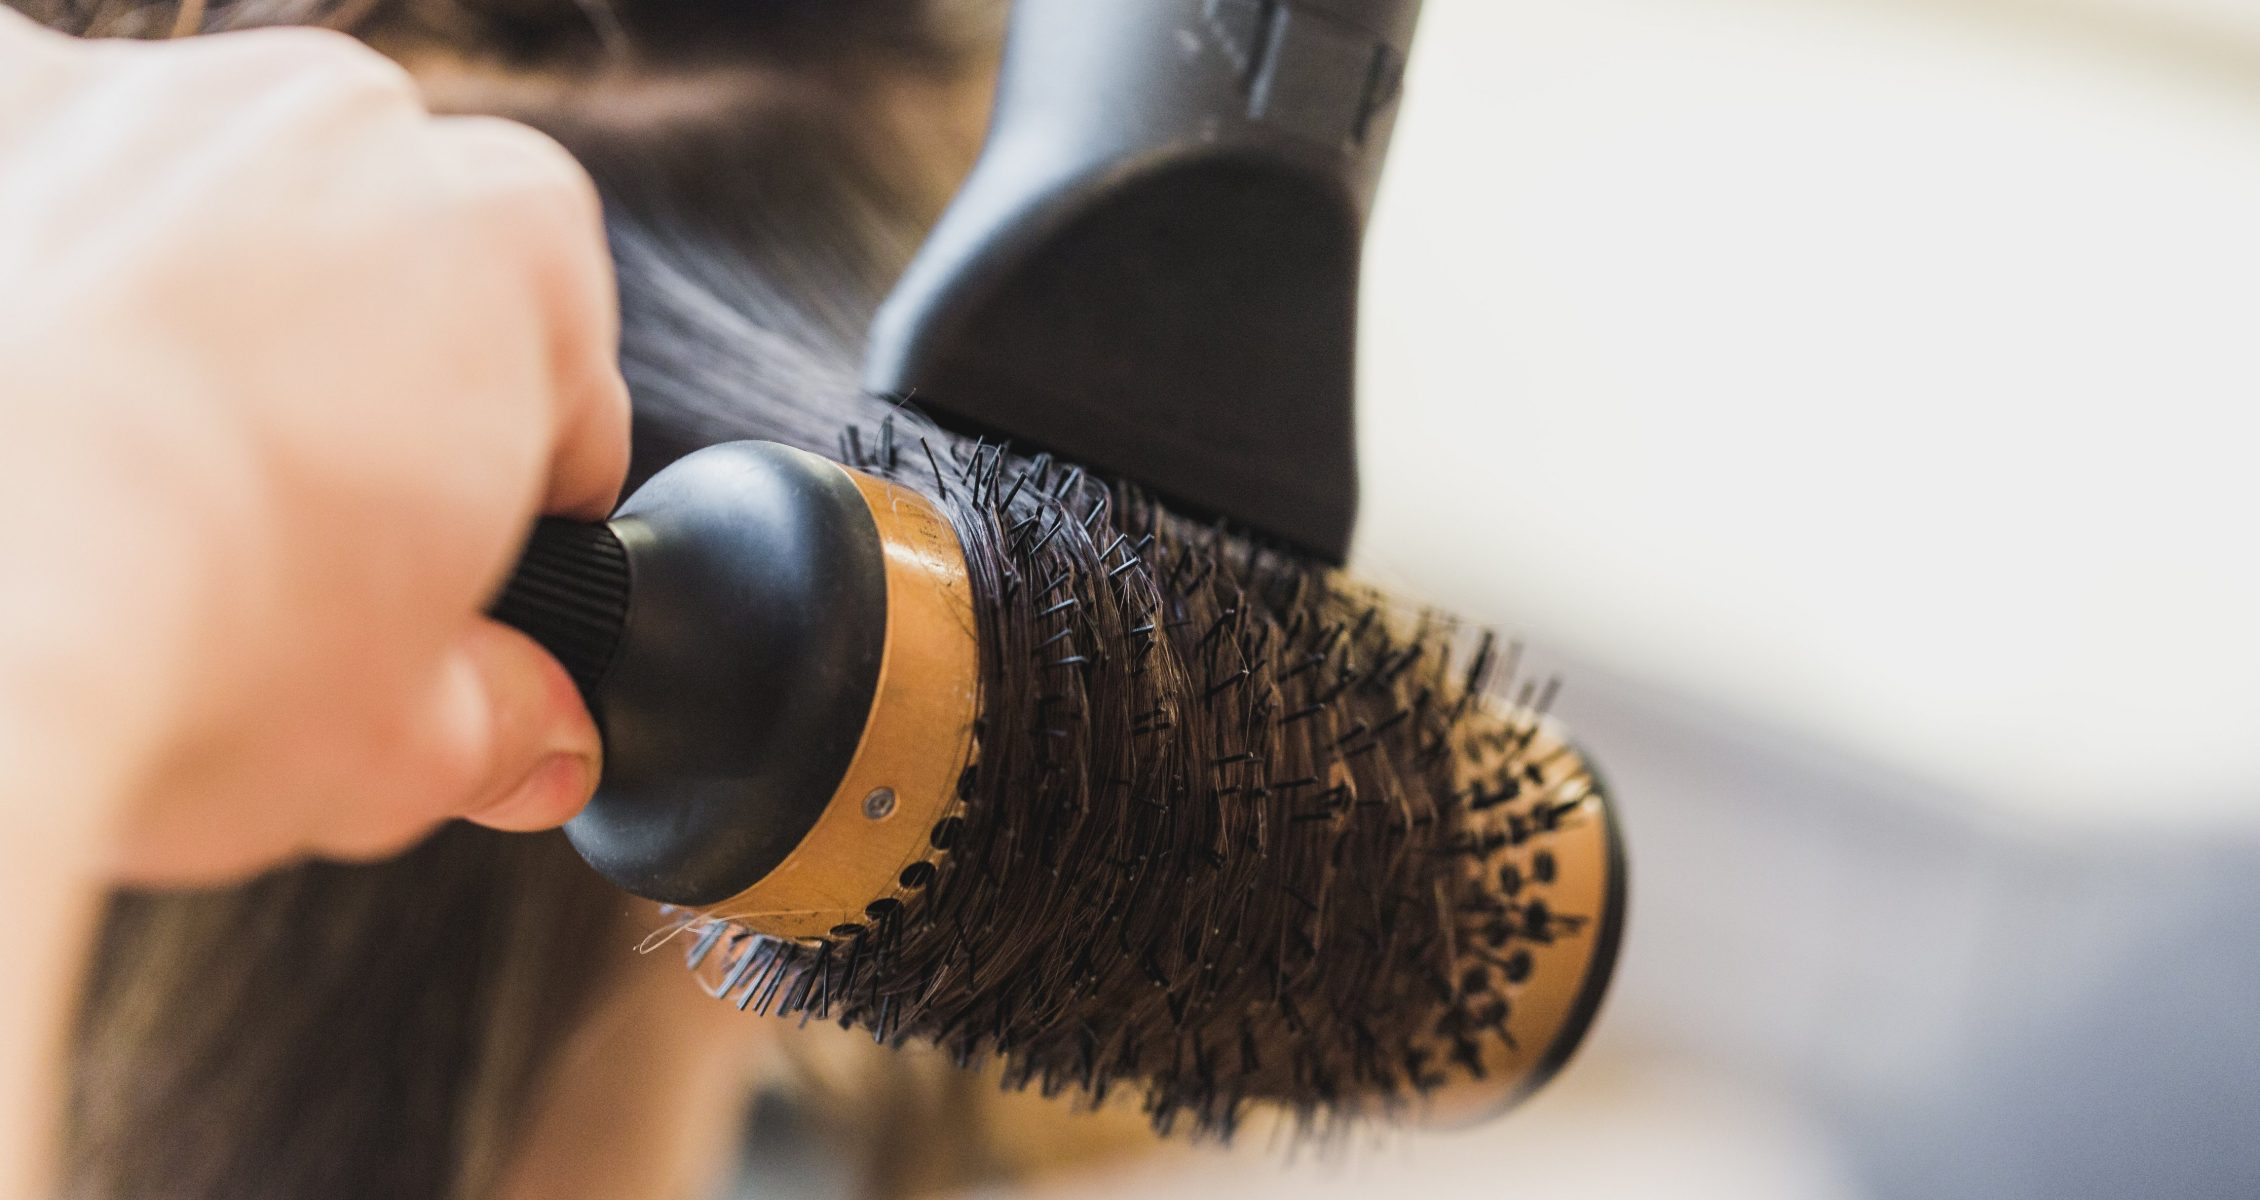 Brown hair being styled with a round brush and blow dryer